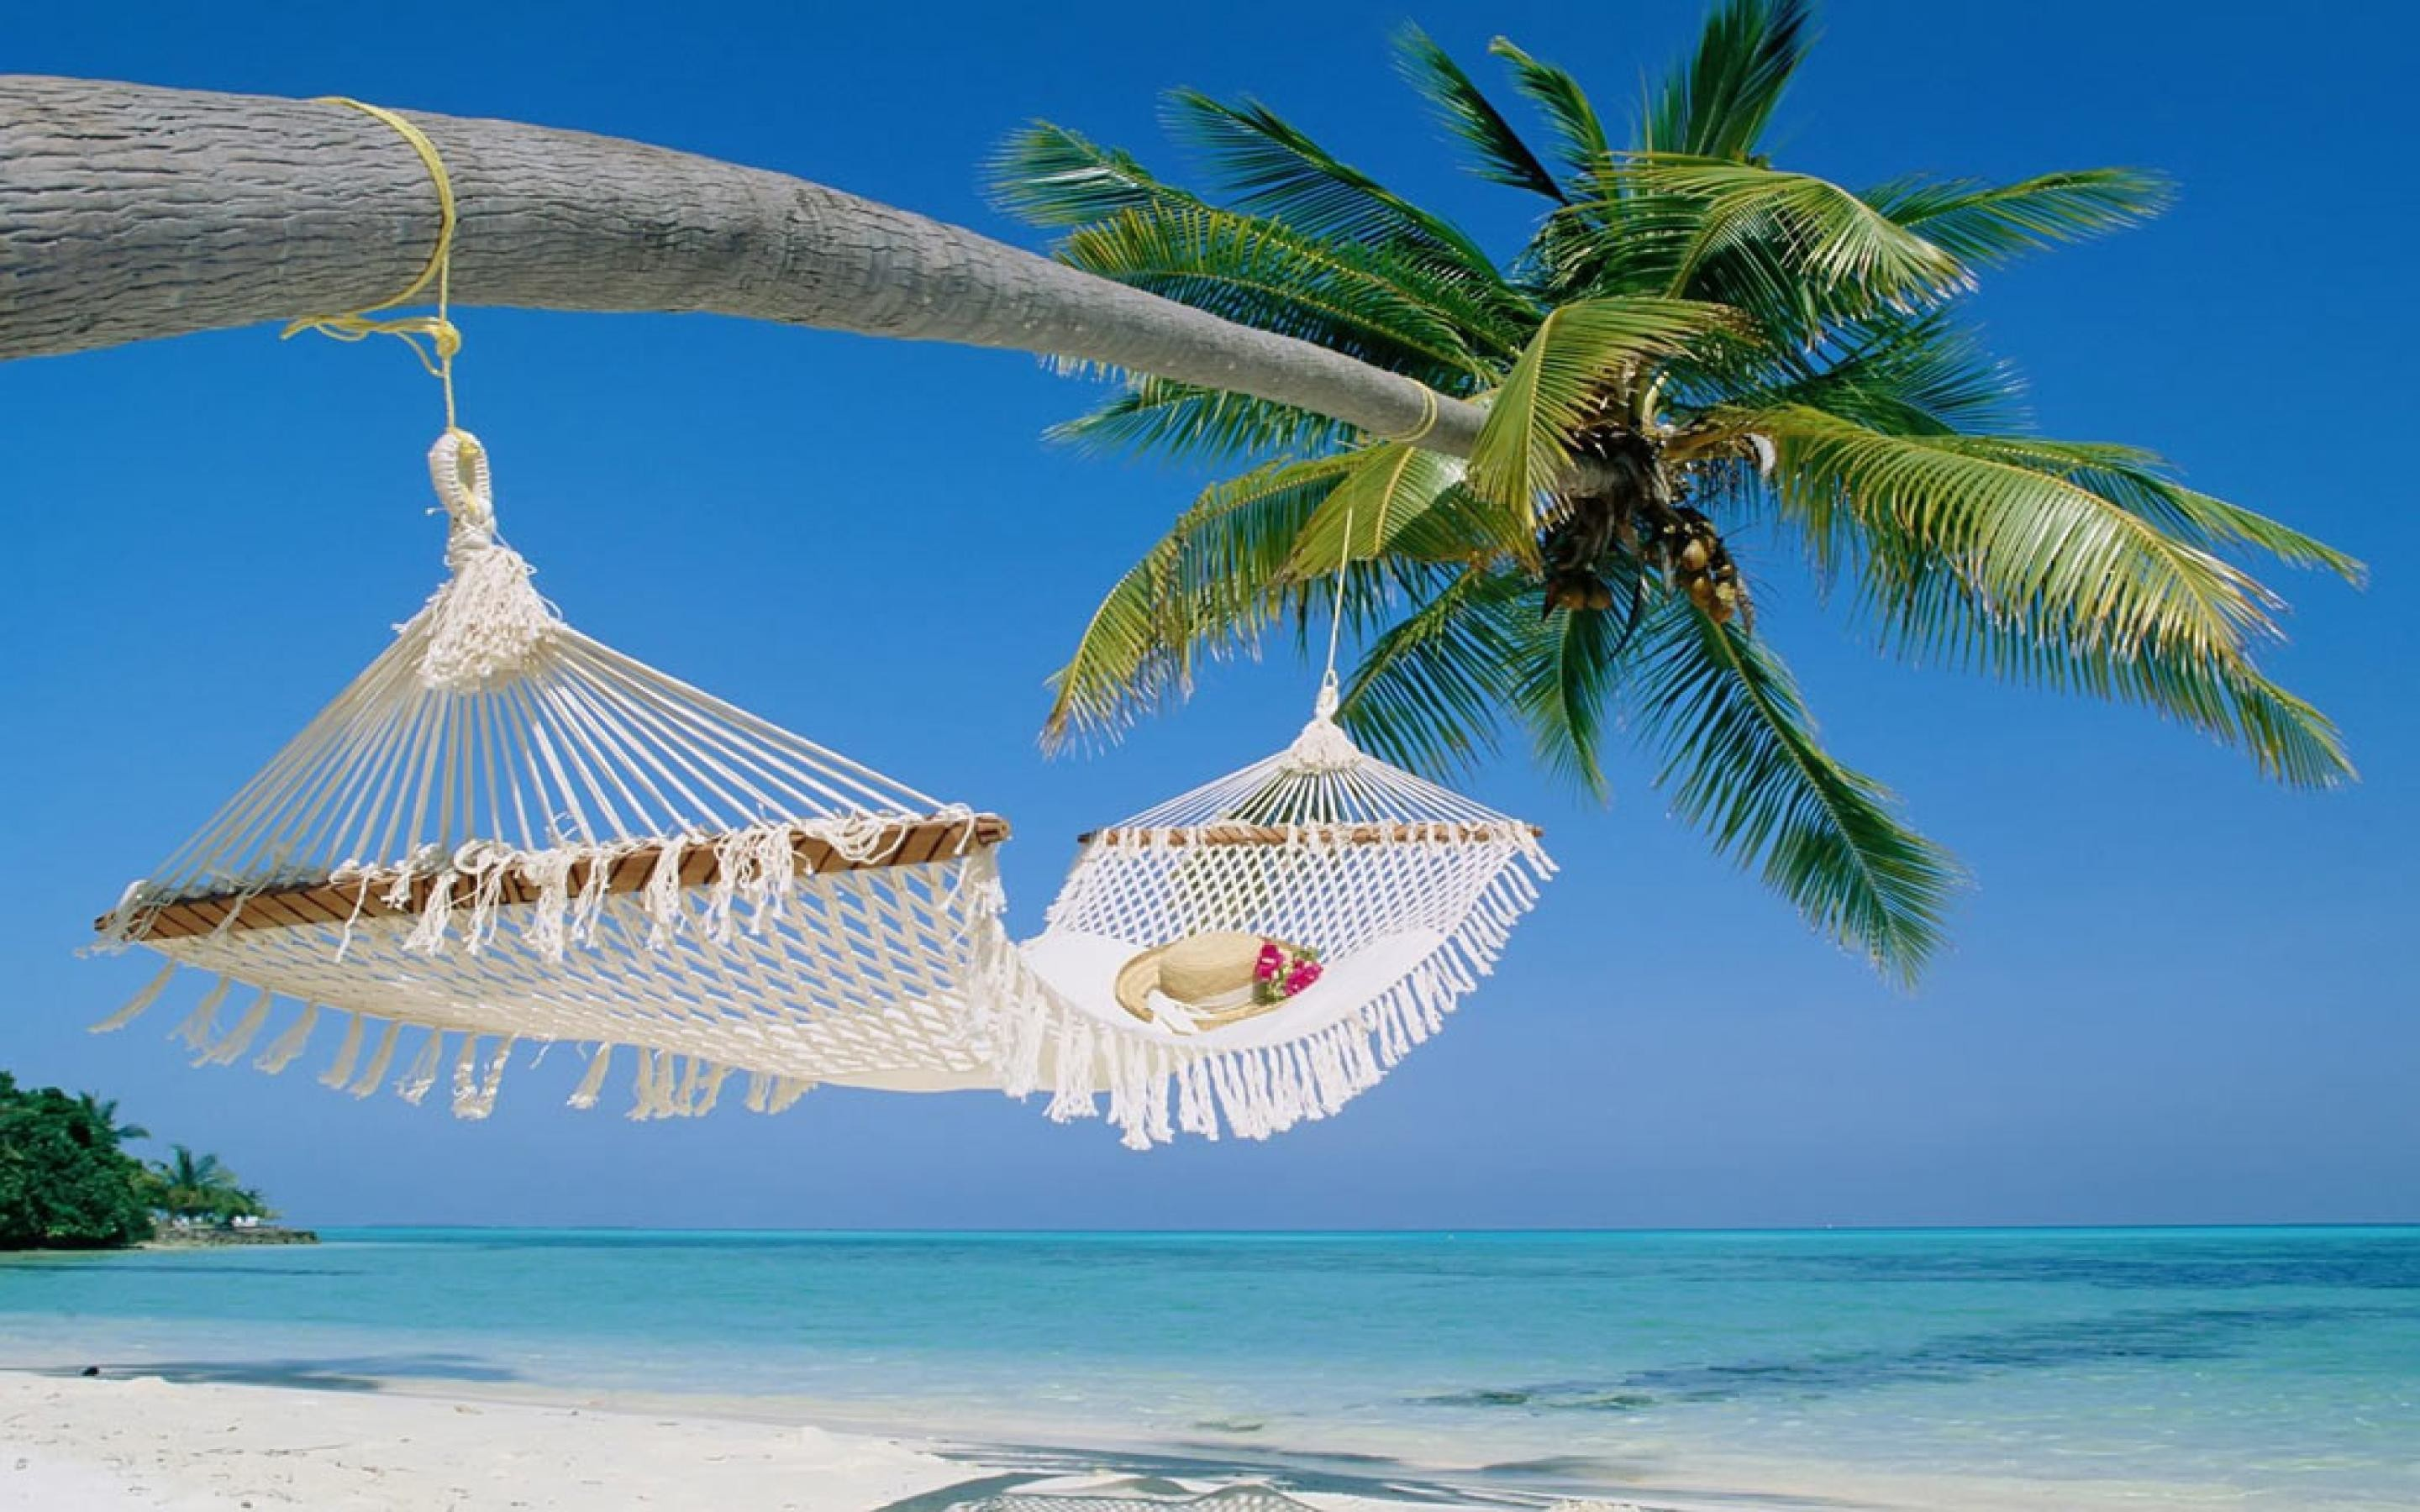 preview wallpaper maldives beach palm trees maldives tropical beach palm  tree with hammock wallpaper in high …